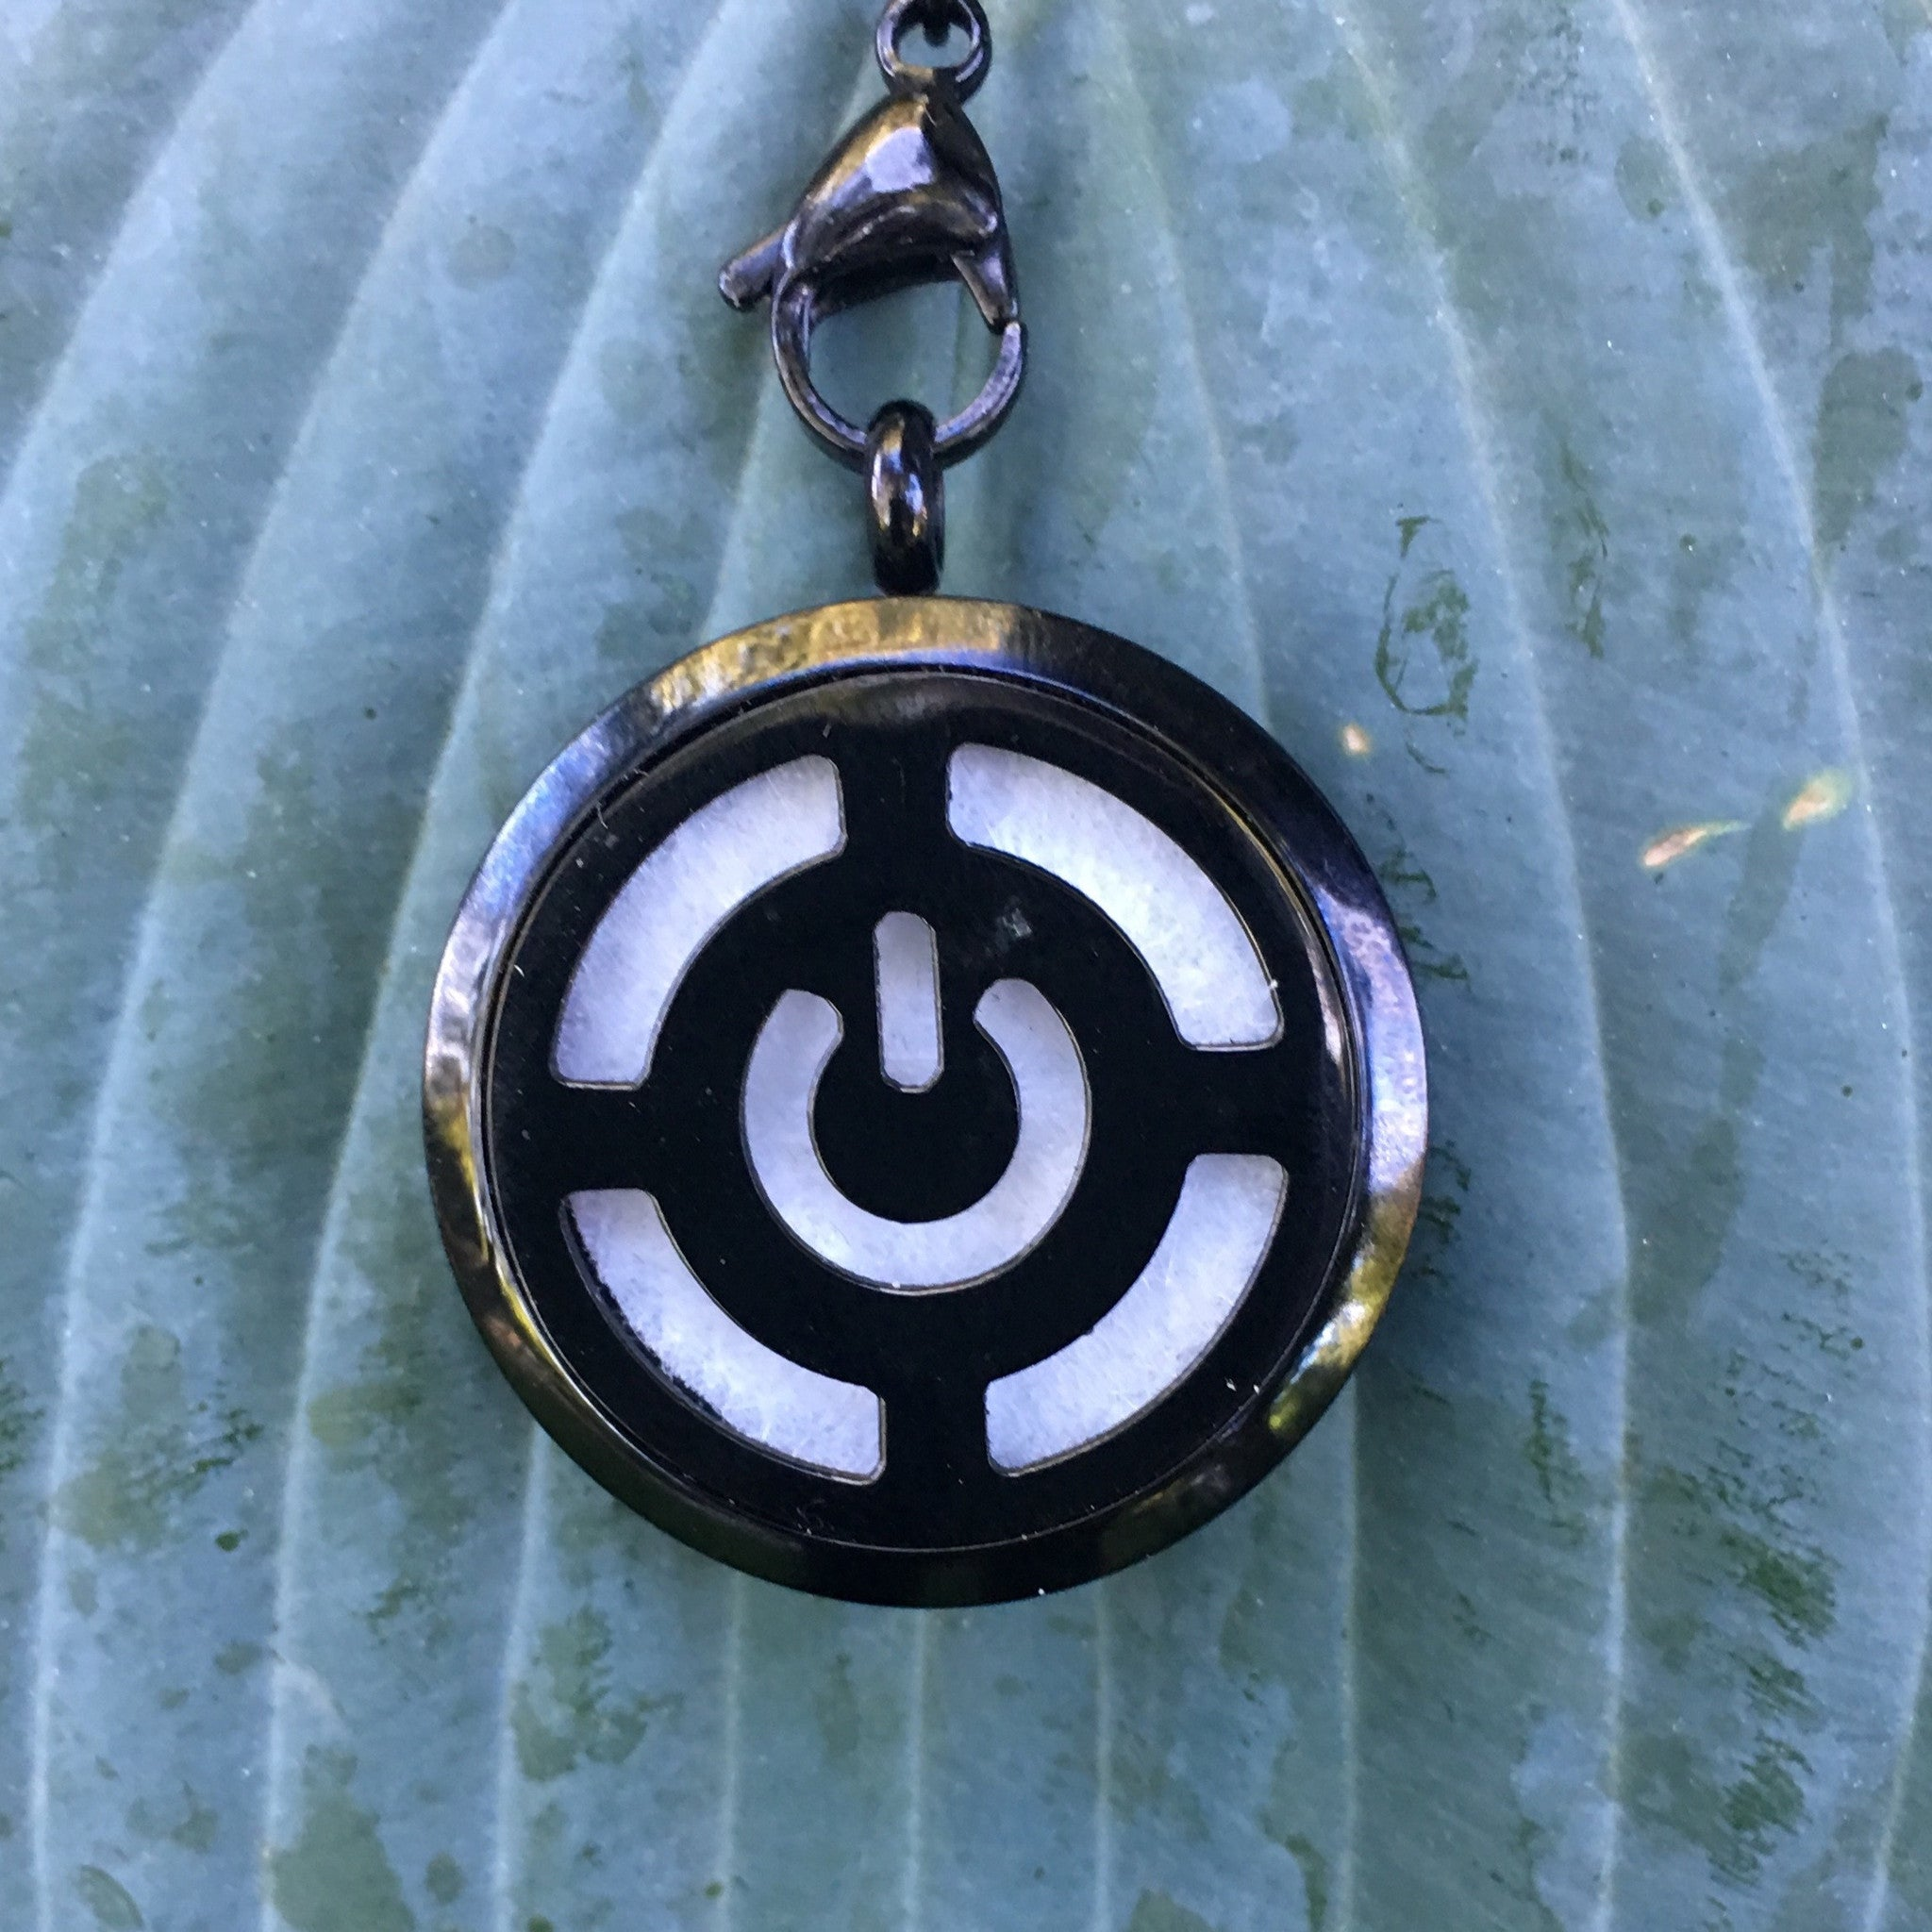 30mm Black Power Button Stainless Steel Essential Oil Diffuser Necklace